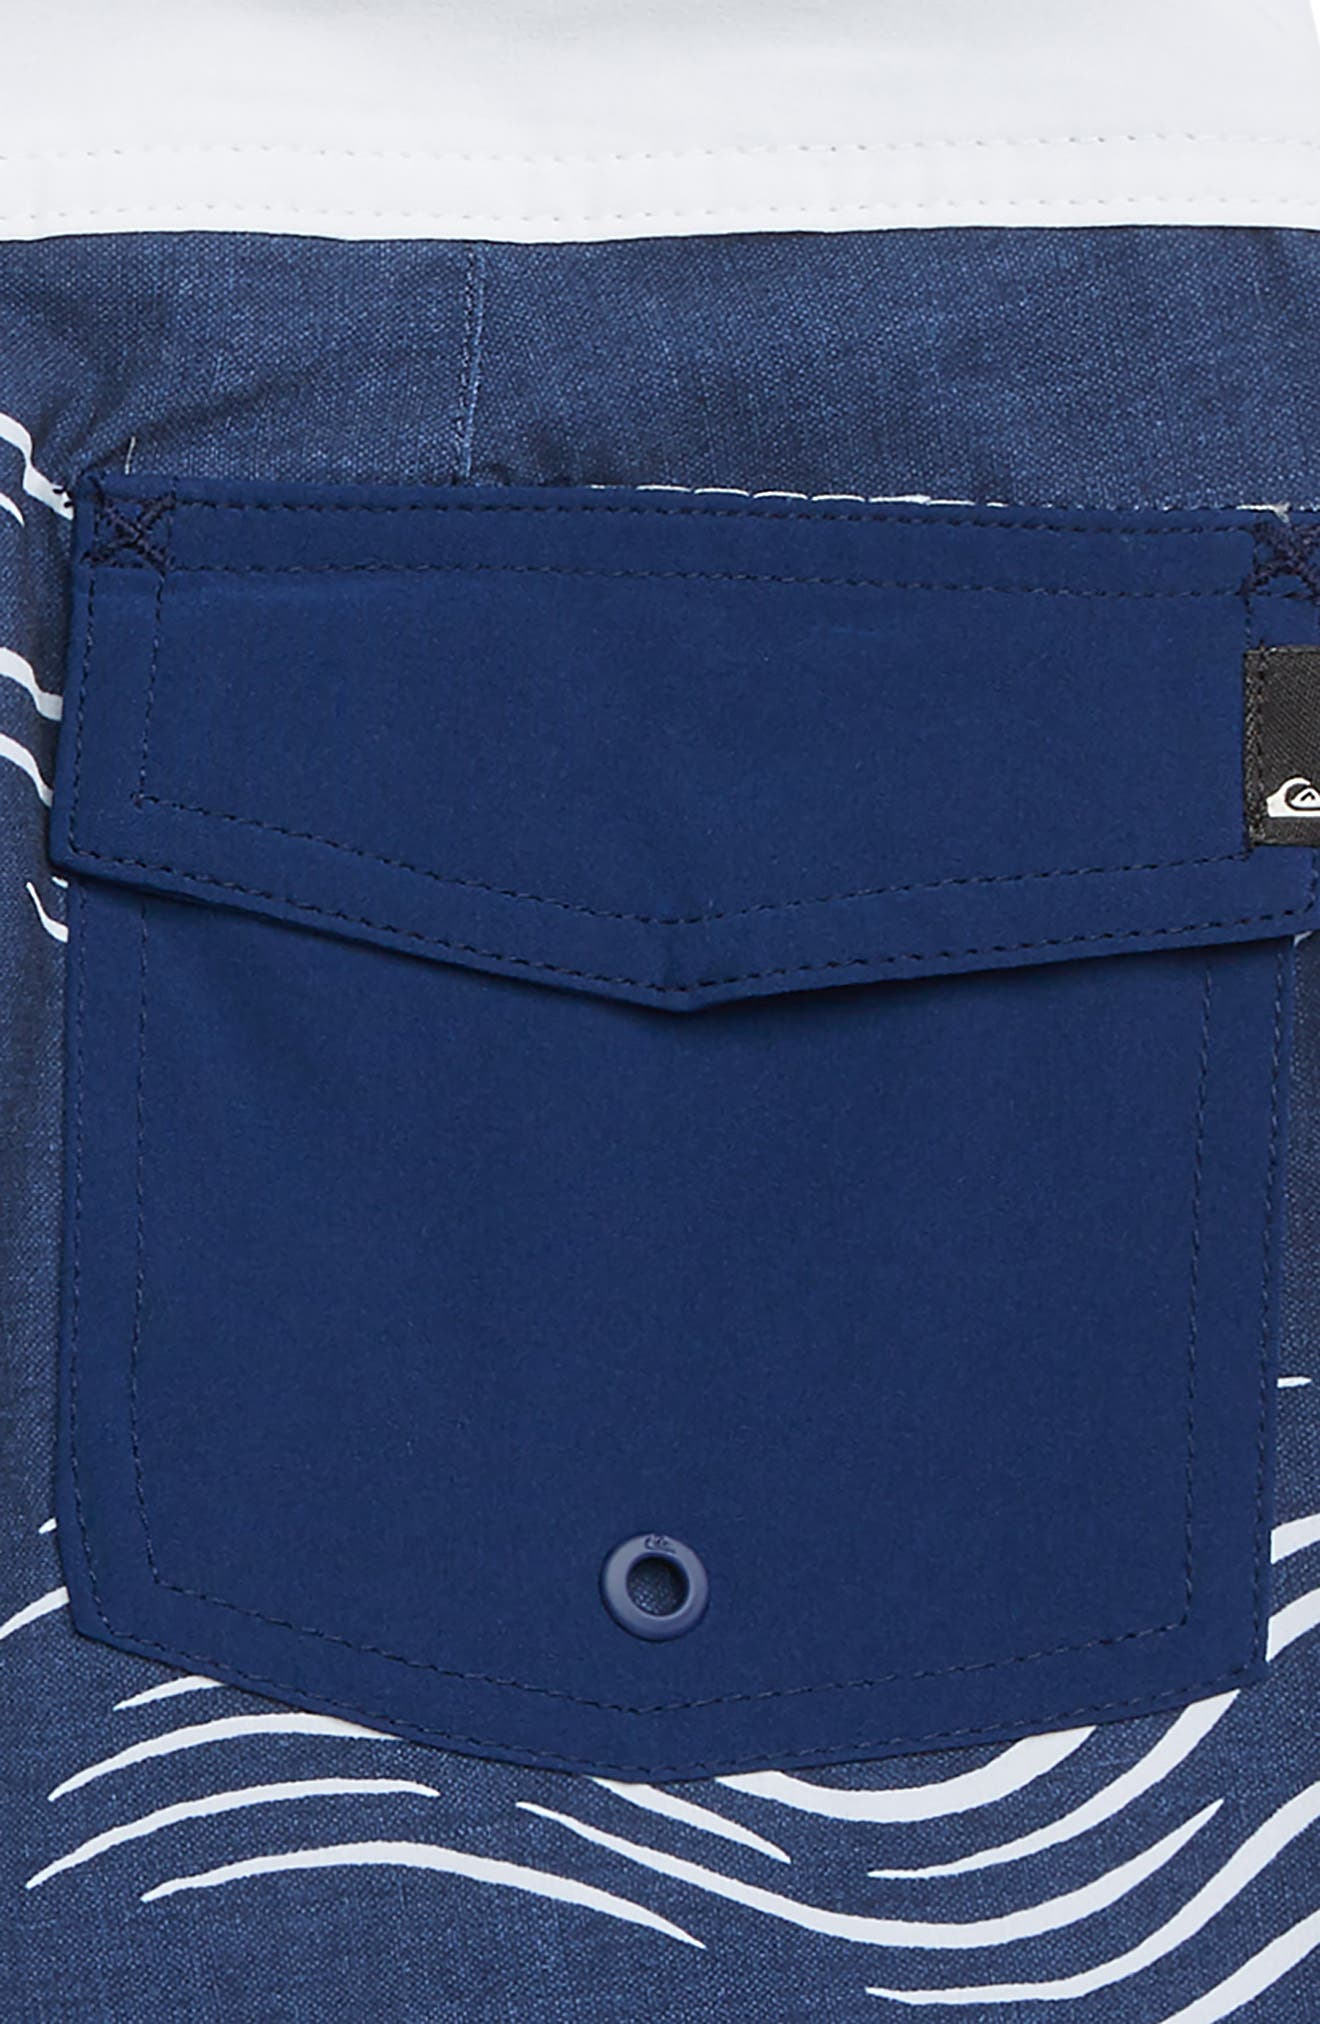 Highline Zen Scallop Board Shorts,                             Alternate thumbnail 3, color,                             MEDIEVEL BLUE